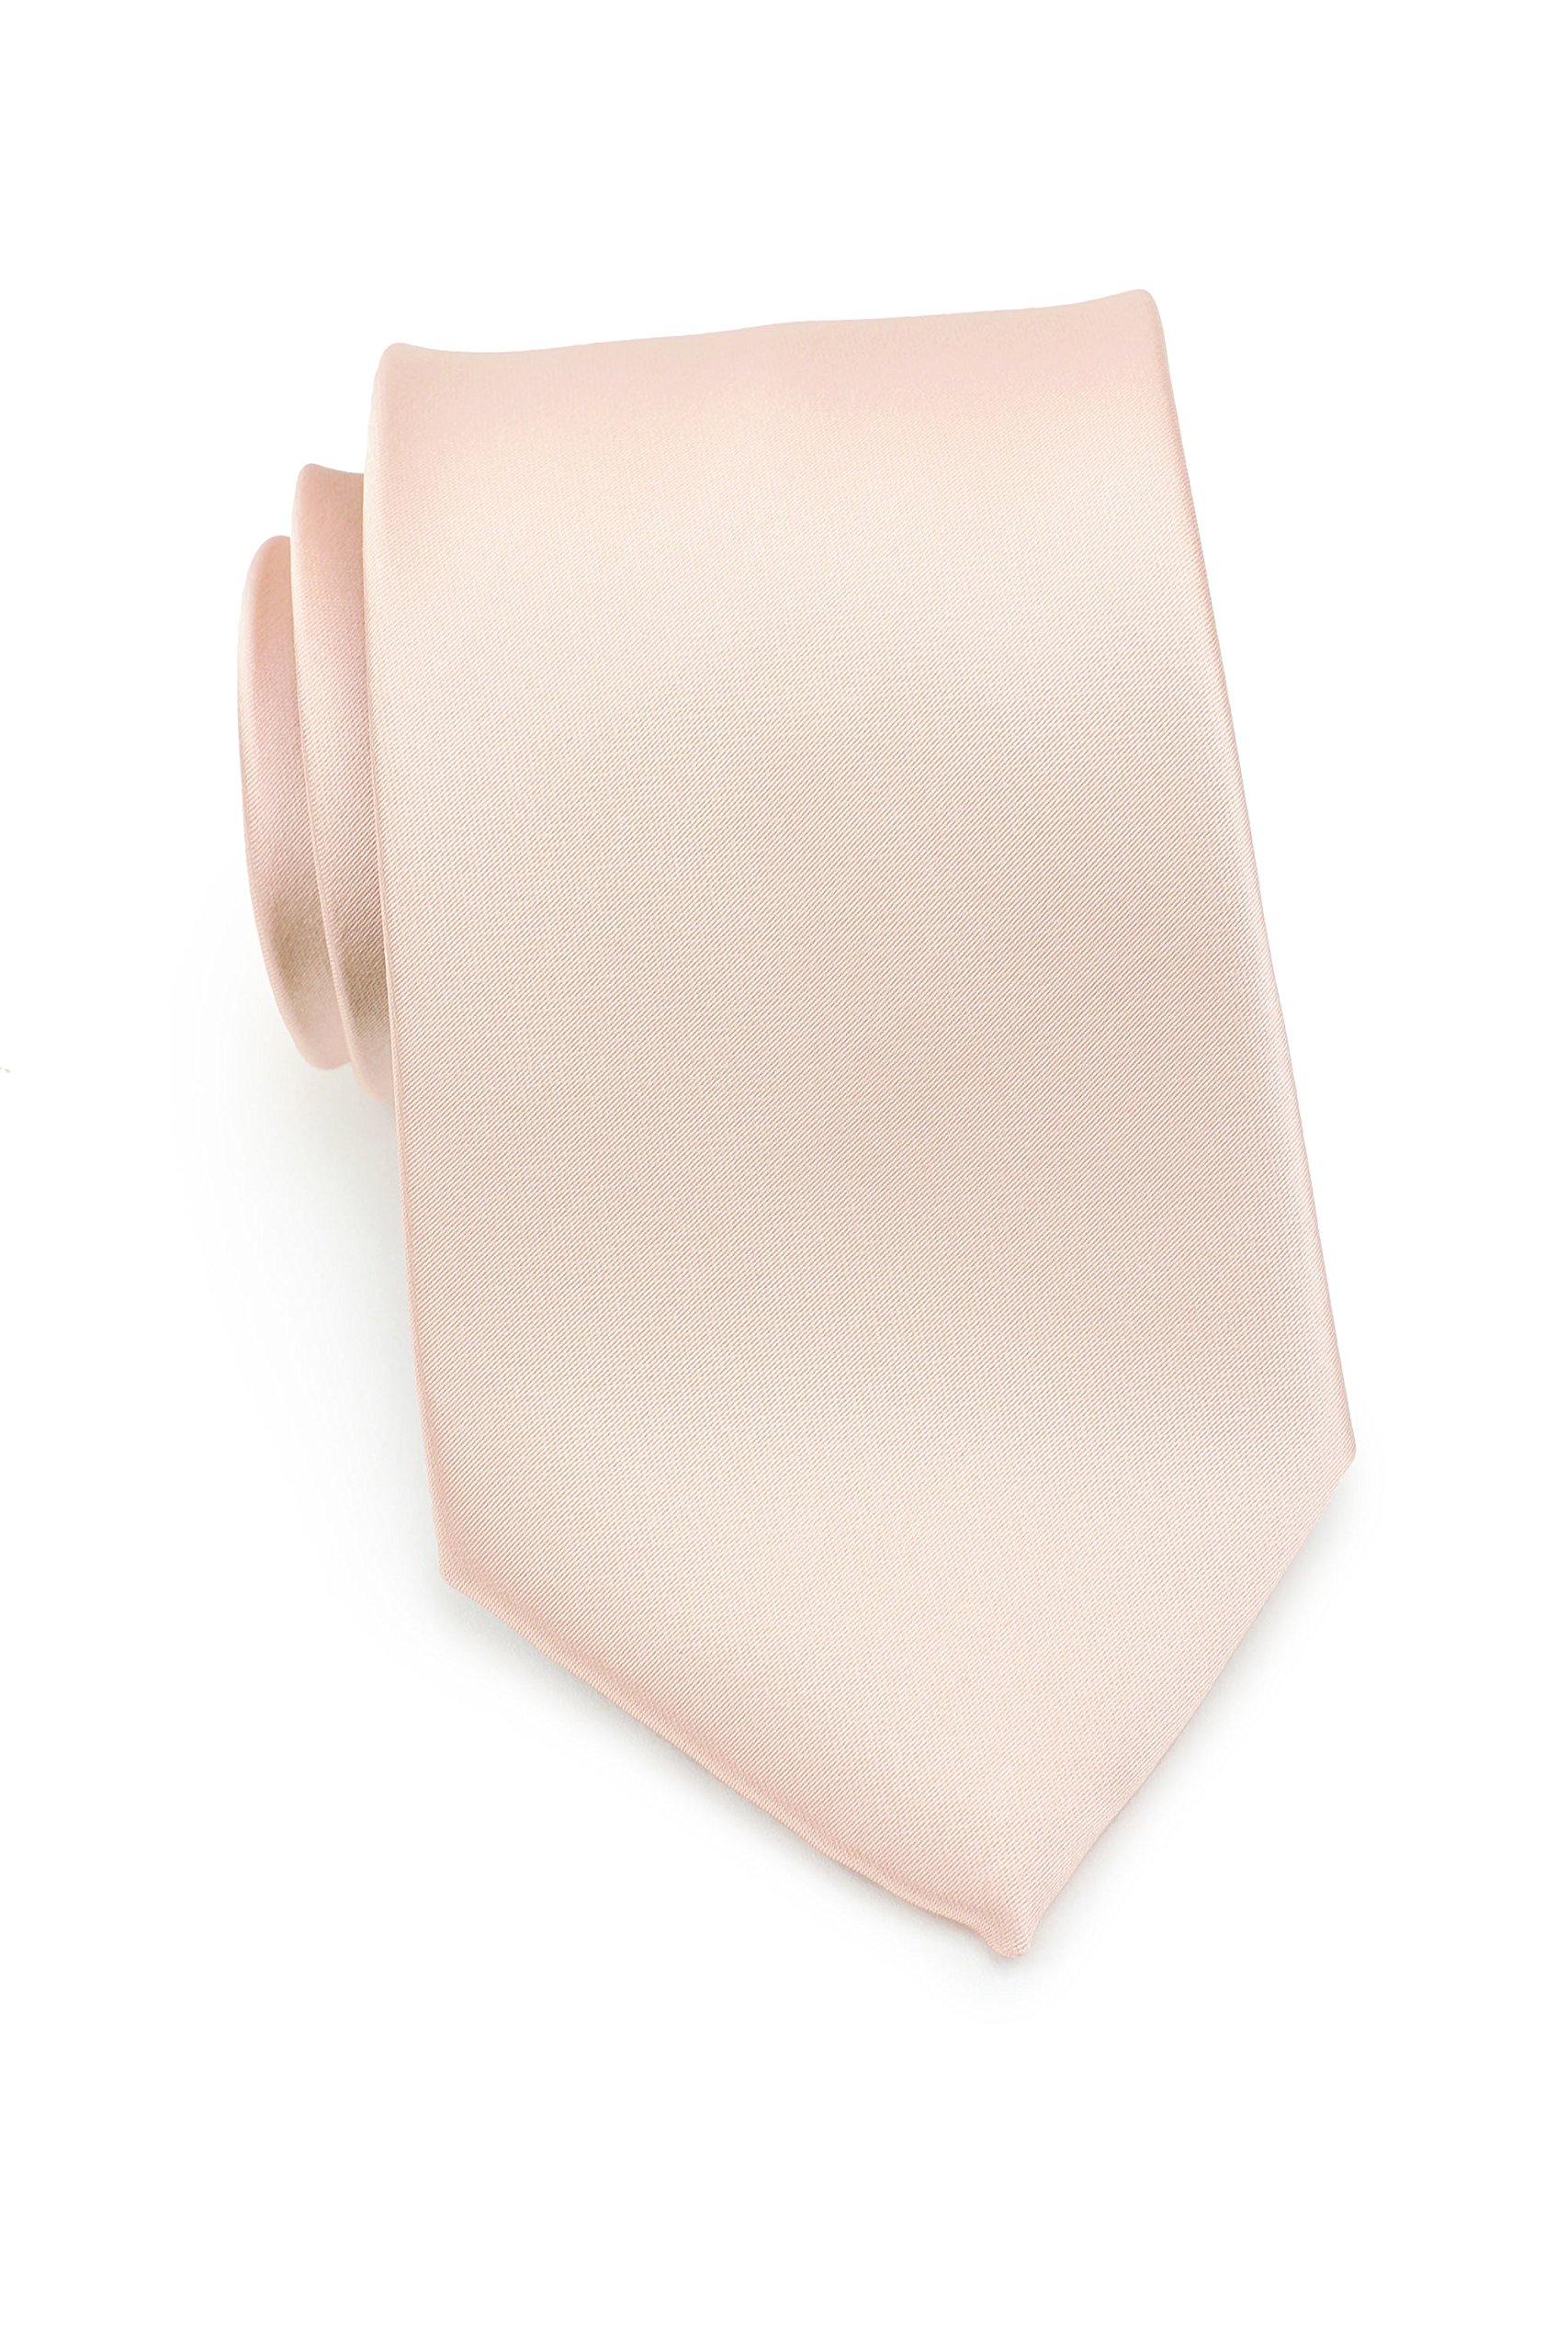 Bows-N-Ties Men's Necktie Solid Color Microfiber Satin Tie 3.25 Inches (Antique Blush)